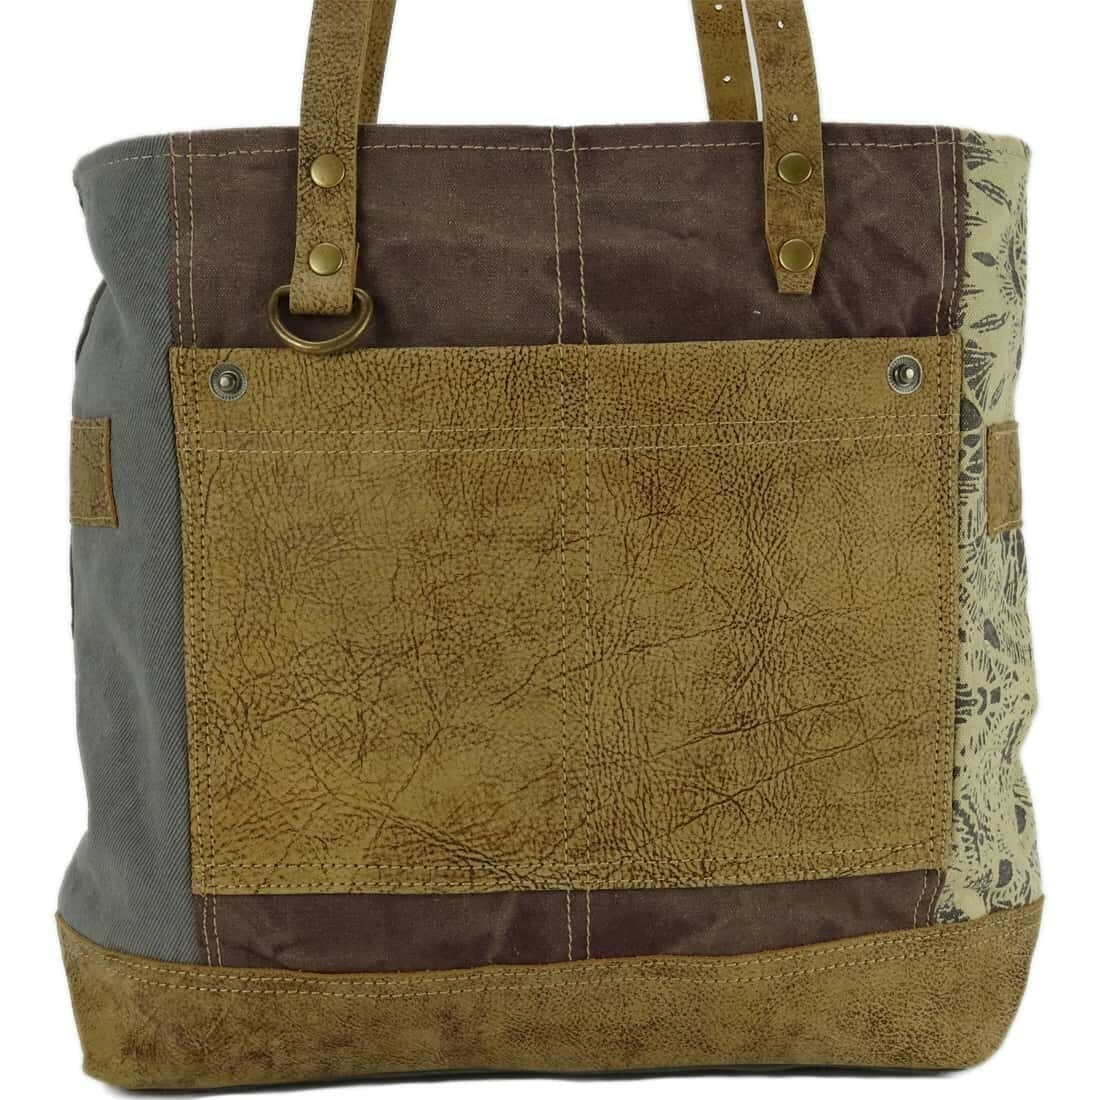 Myra Bag Shopper Giselle voorkant